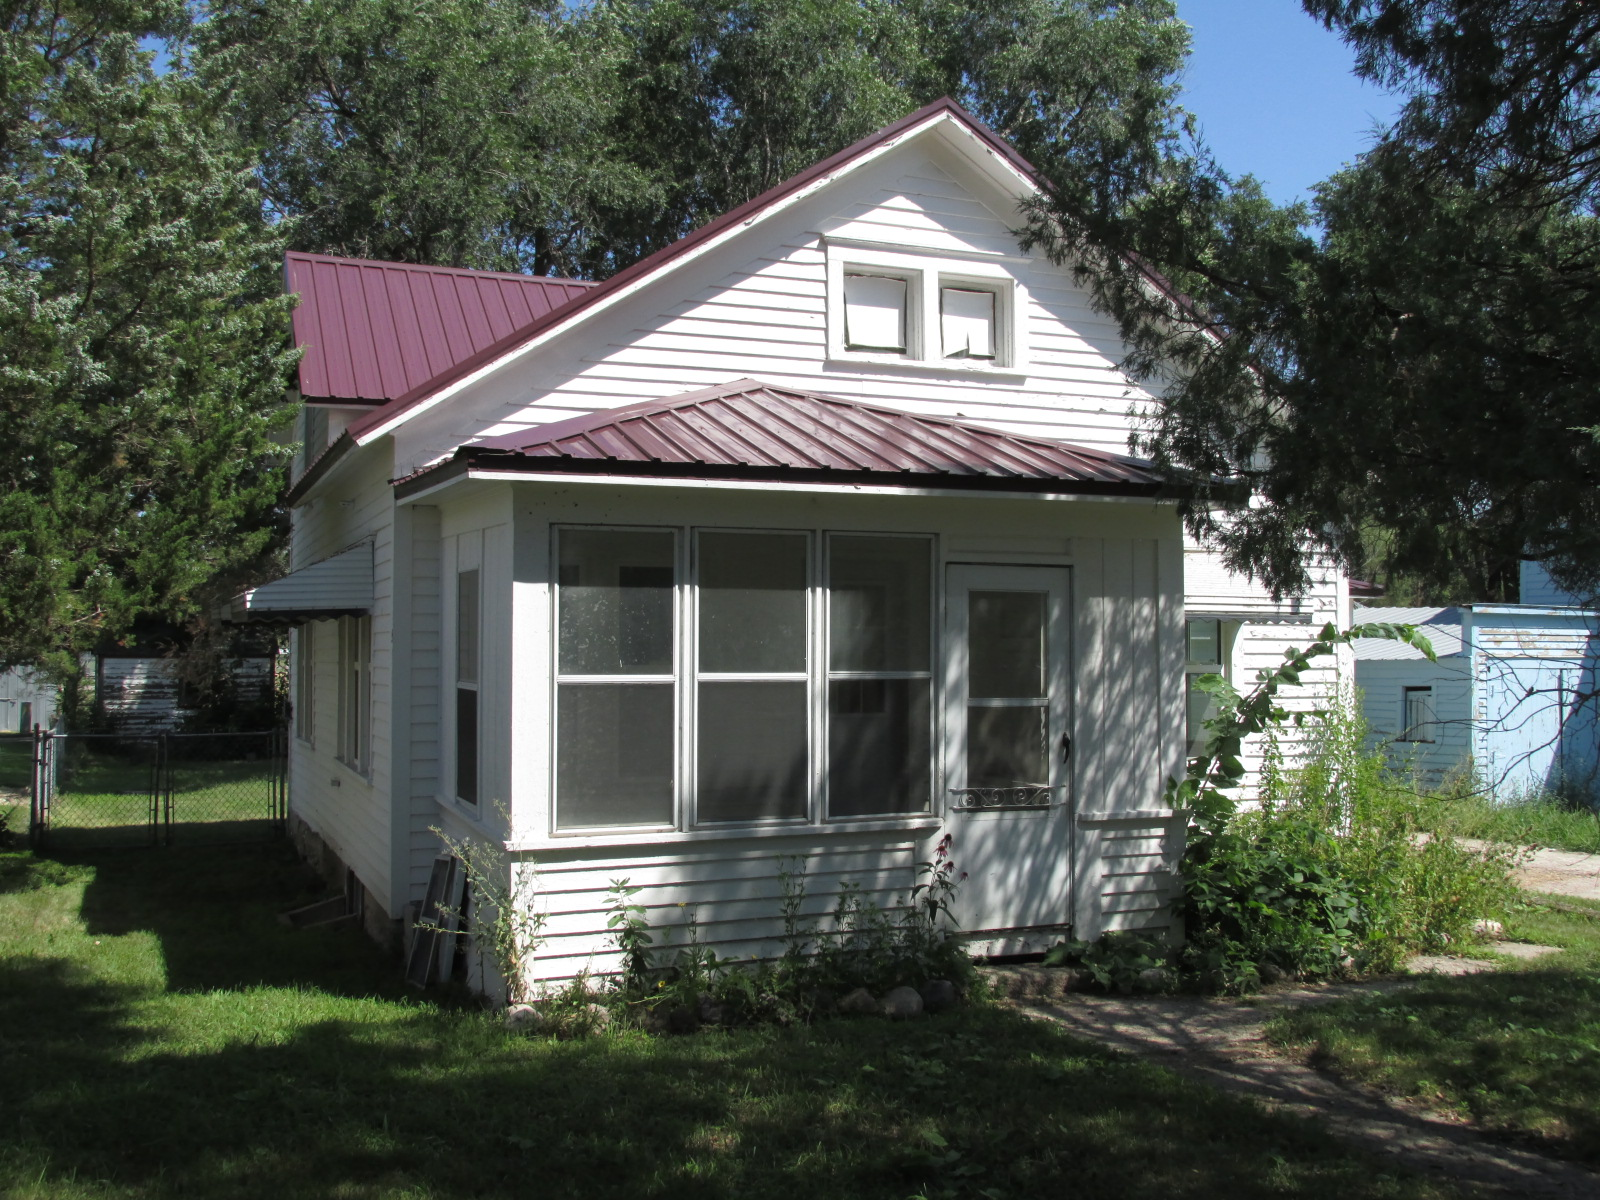 208 W 8th St, Woonsocket, South Dakota 57385